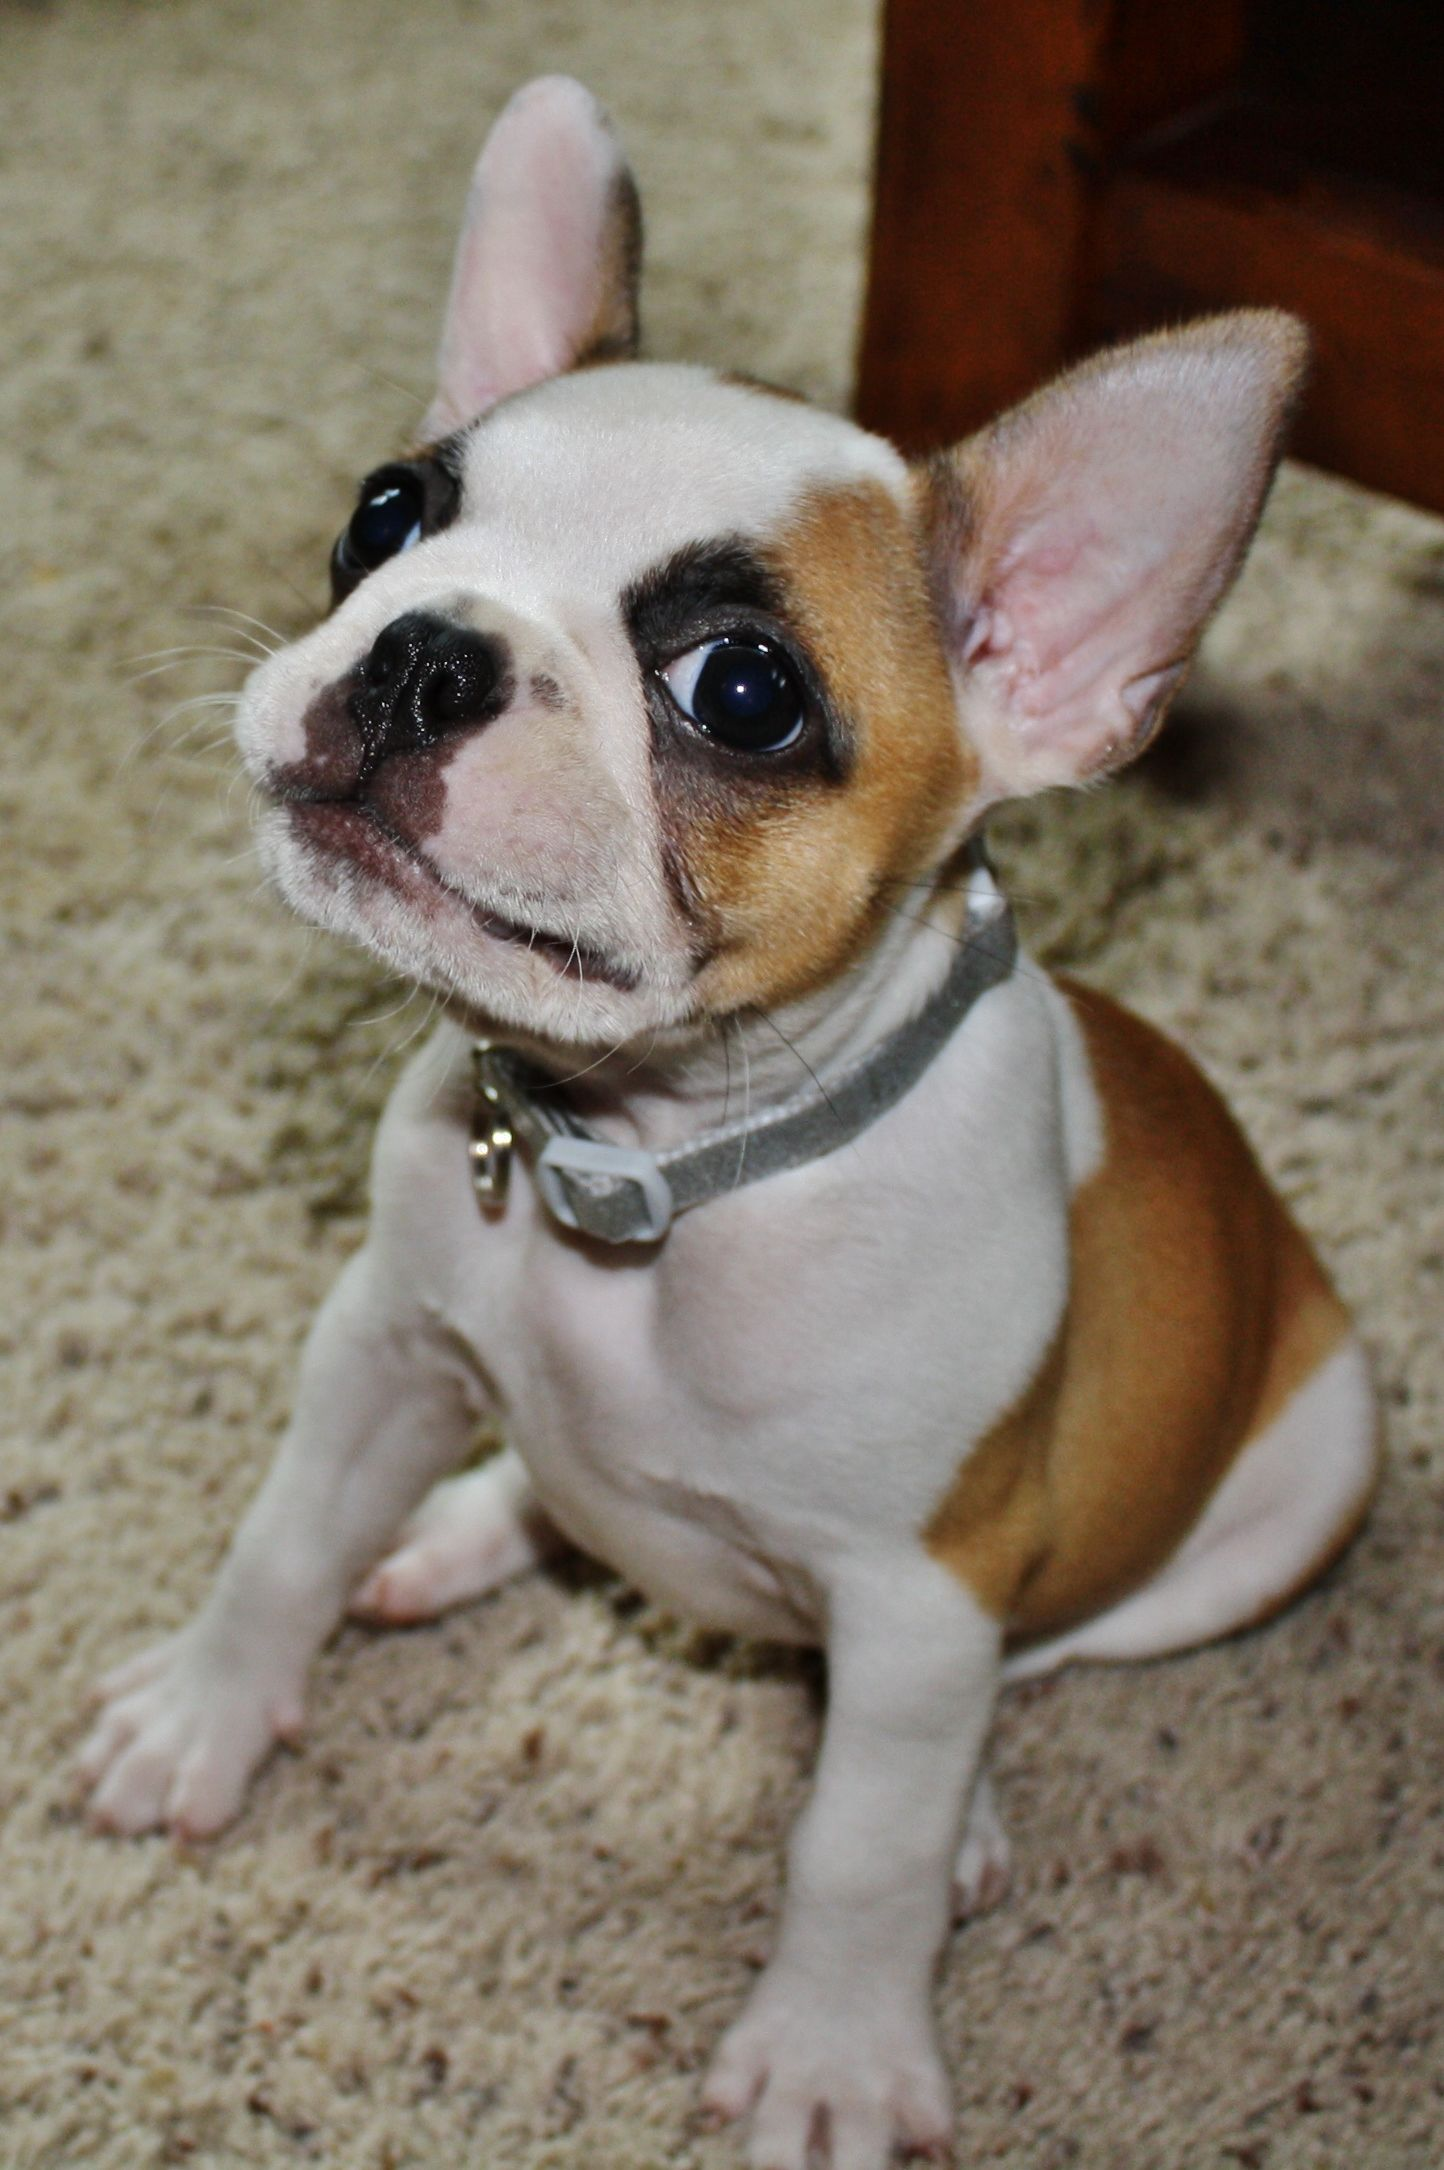 Read This Article To Get Answers To Your Questions About Dogs Whippet Dog Dogs Bulldog